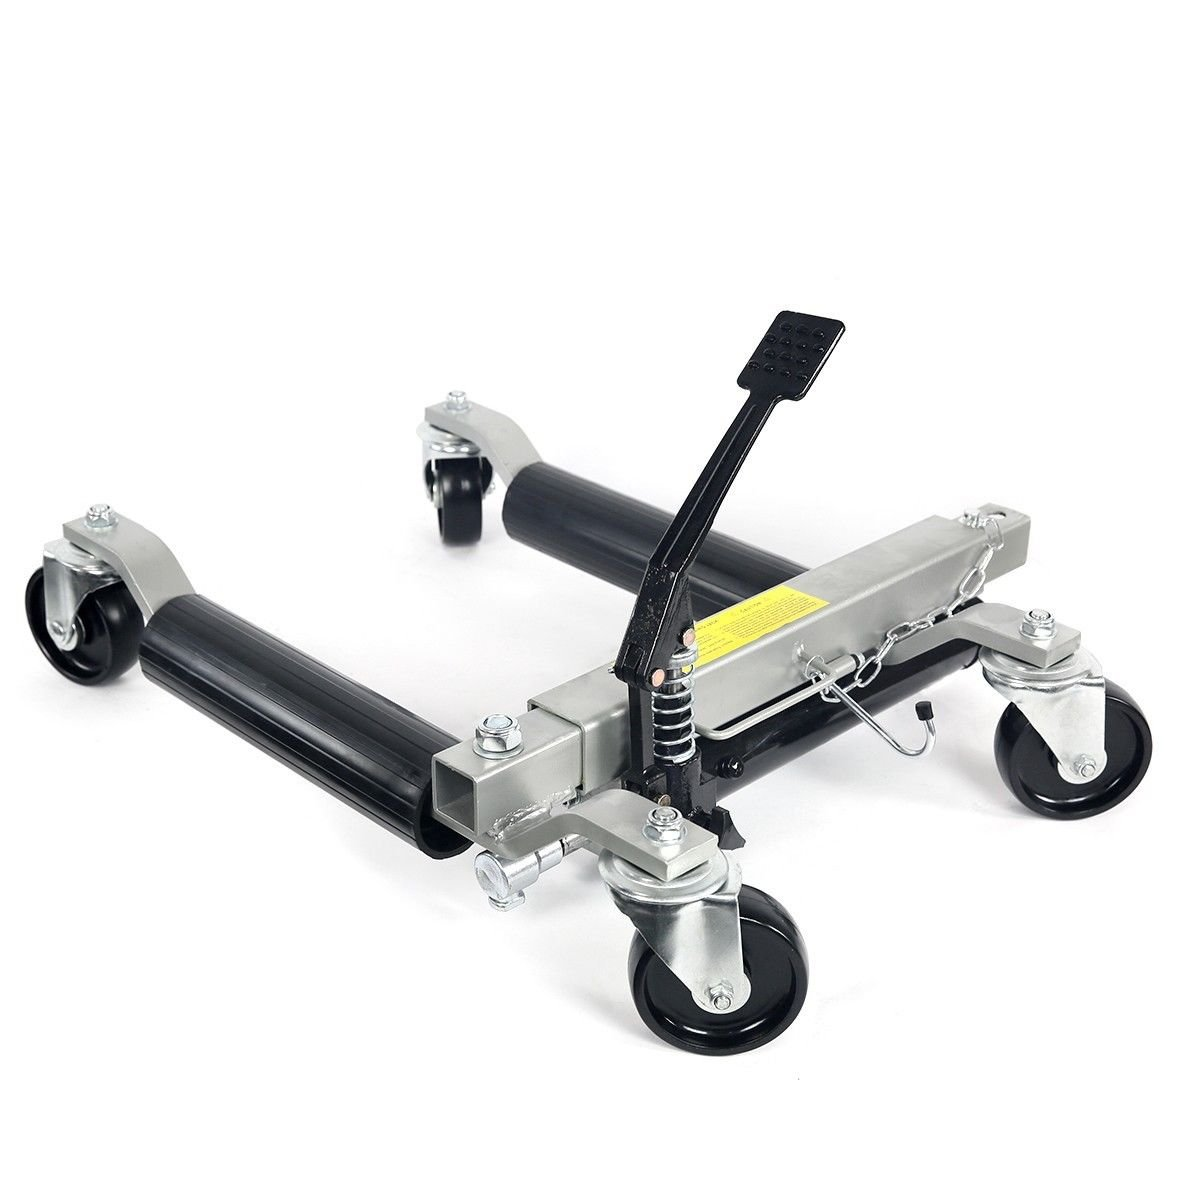 Rison® 2pc 1500lb HYDRAULIC Positioning Car Wheel Dolly Jack Lift hoists Moving Vehicle by Rison® (Image #3)